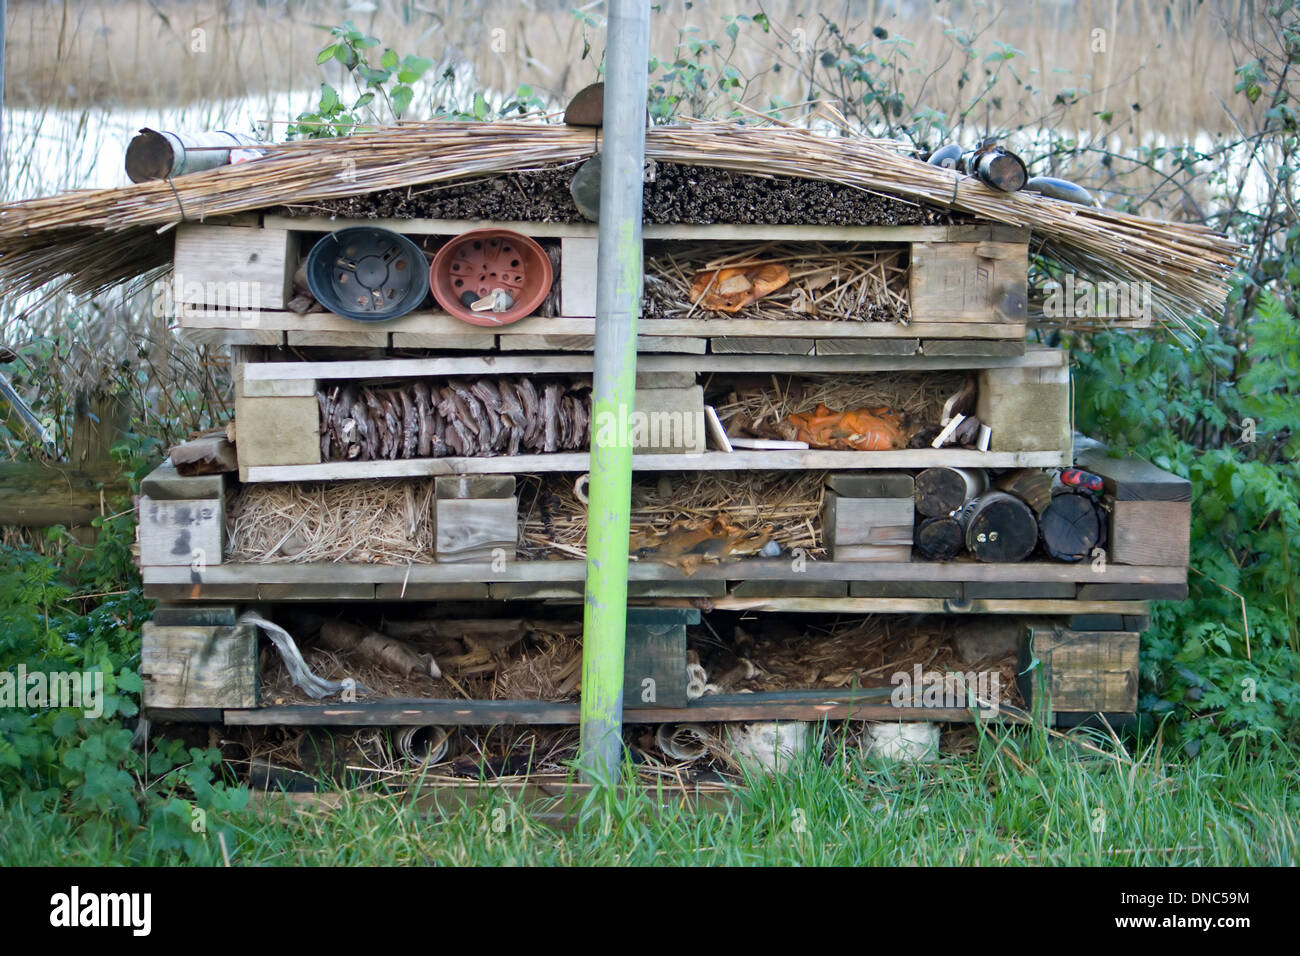 Home for insects and 'creepy crawlies' at Radipole lake nature reserve,Weymouth,Dorset. - Stock Image